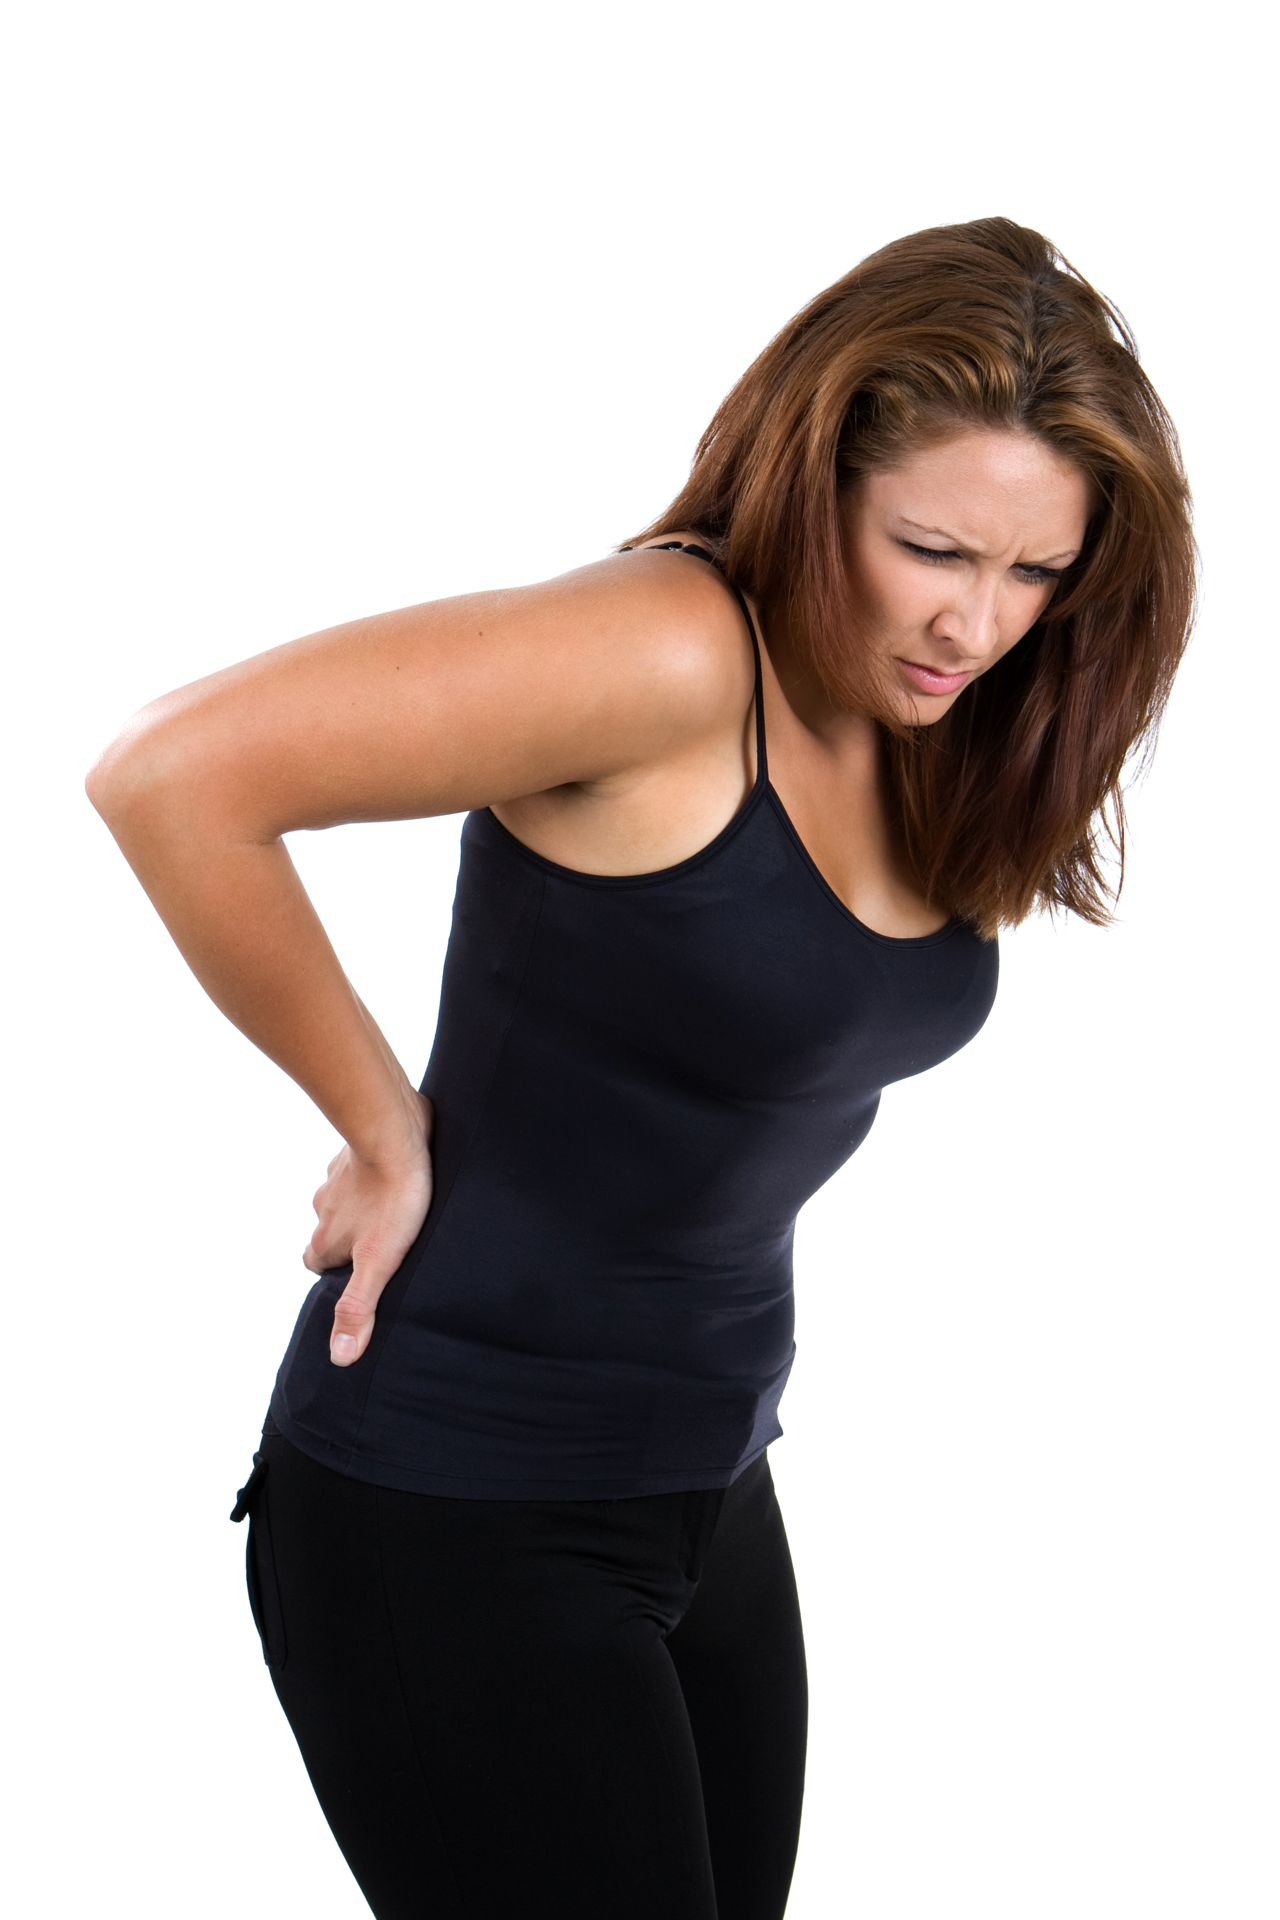 Lady Holding Her Lower Back in Pain